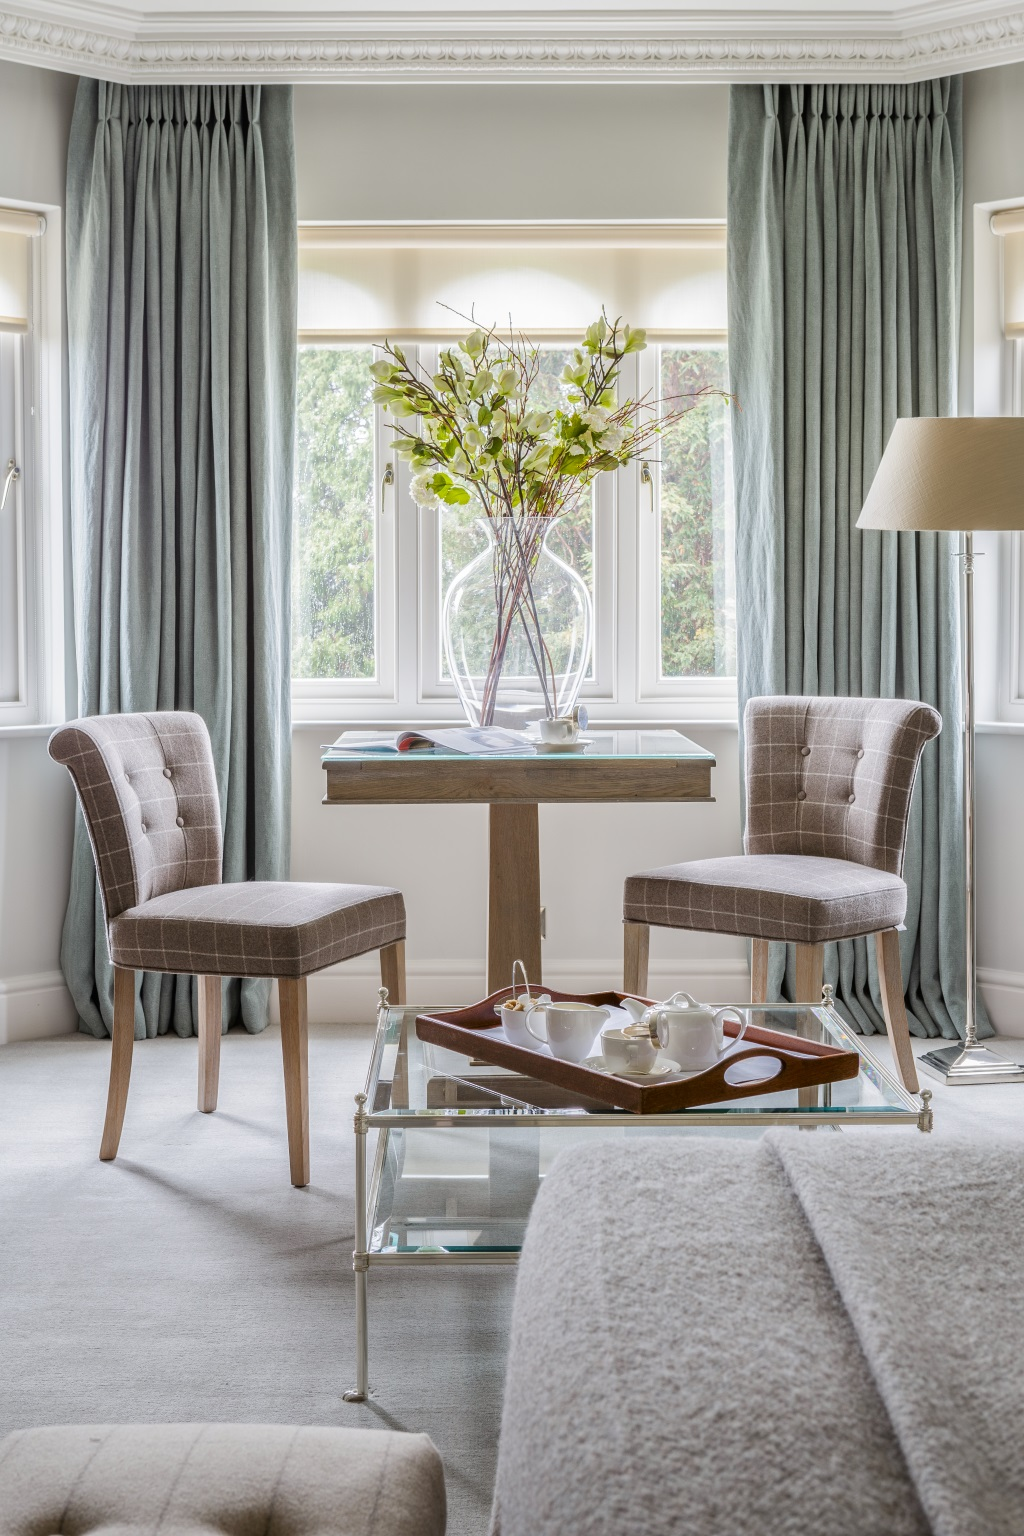 Luxury Hotel Rooms: Our Luxurious Hotel Rooms & Suites In Bath